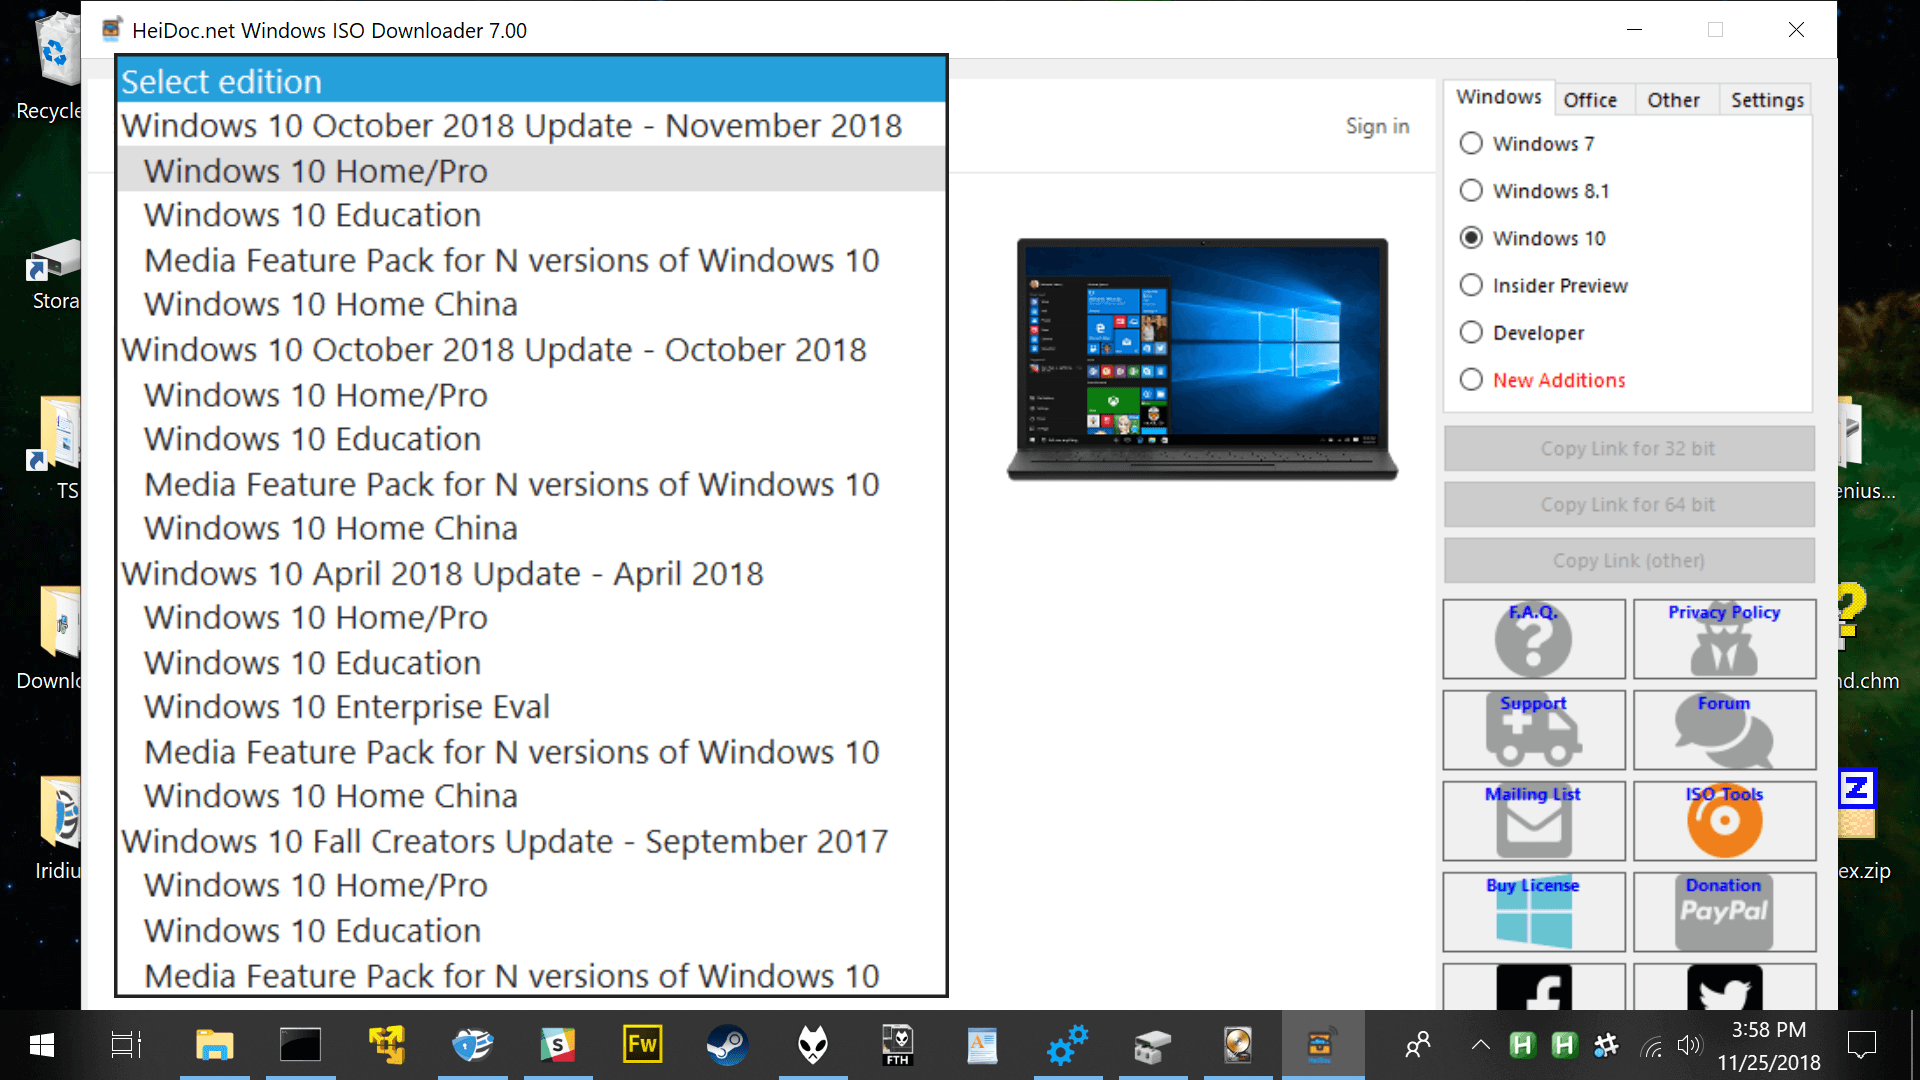 windows 10 download iso 64 bit 1809